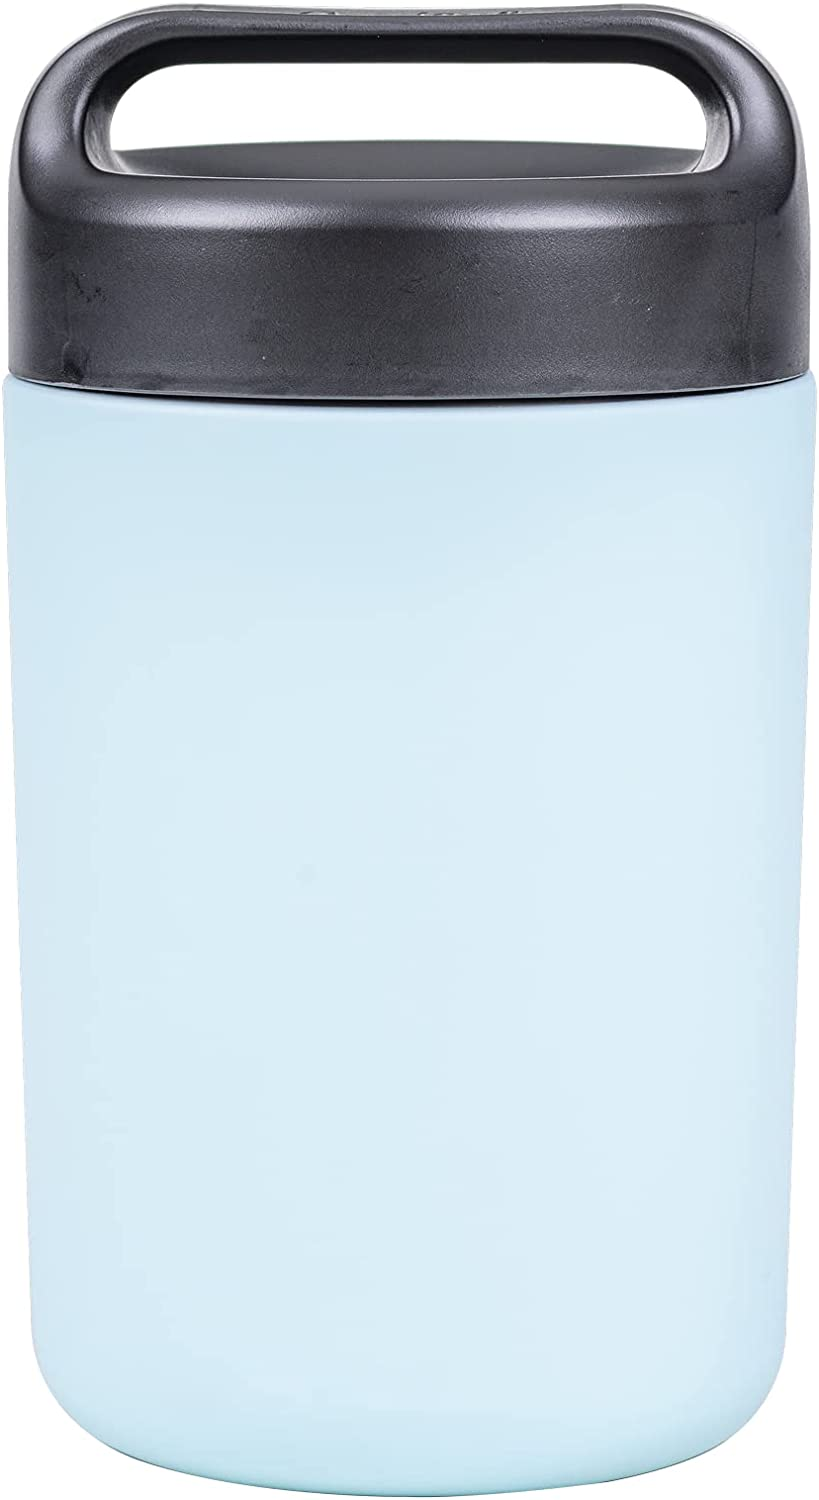 Goodful Vacuum Sealed Insulated Food Jar with Handle Lid, 16 Ounce Stainless Steel Thermos, Lunch Container, 16 Oz, Blue